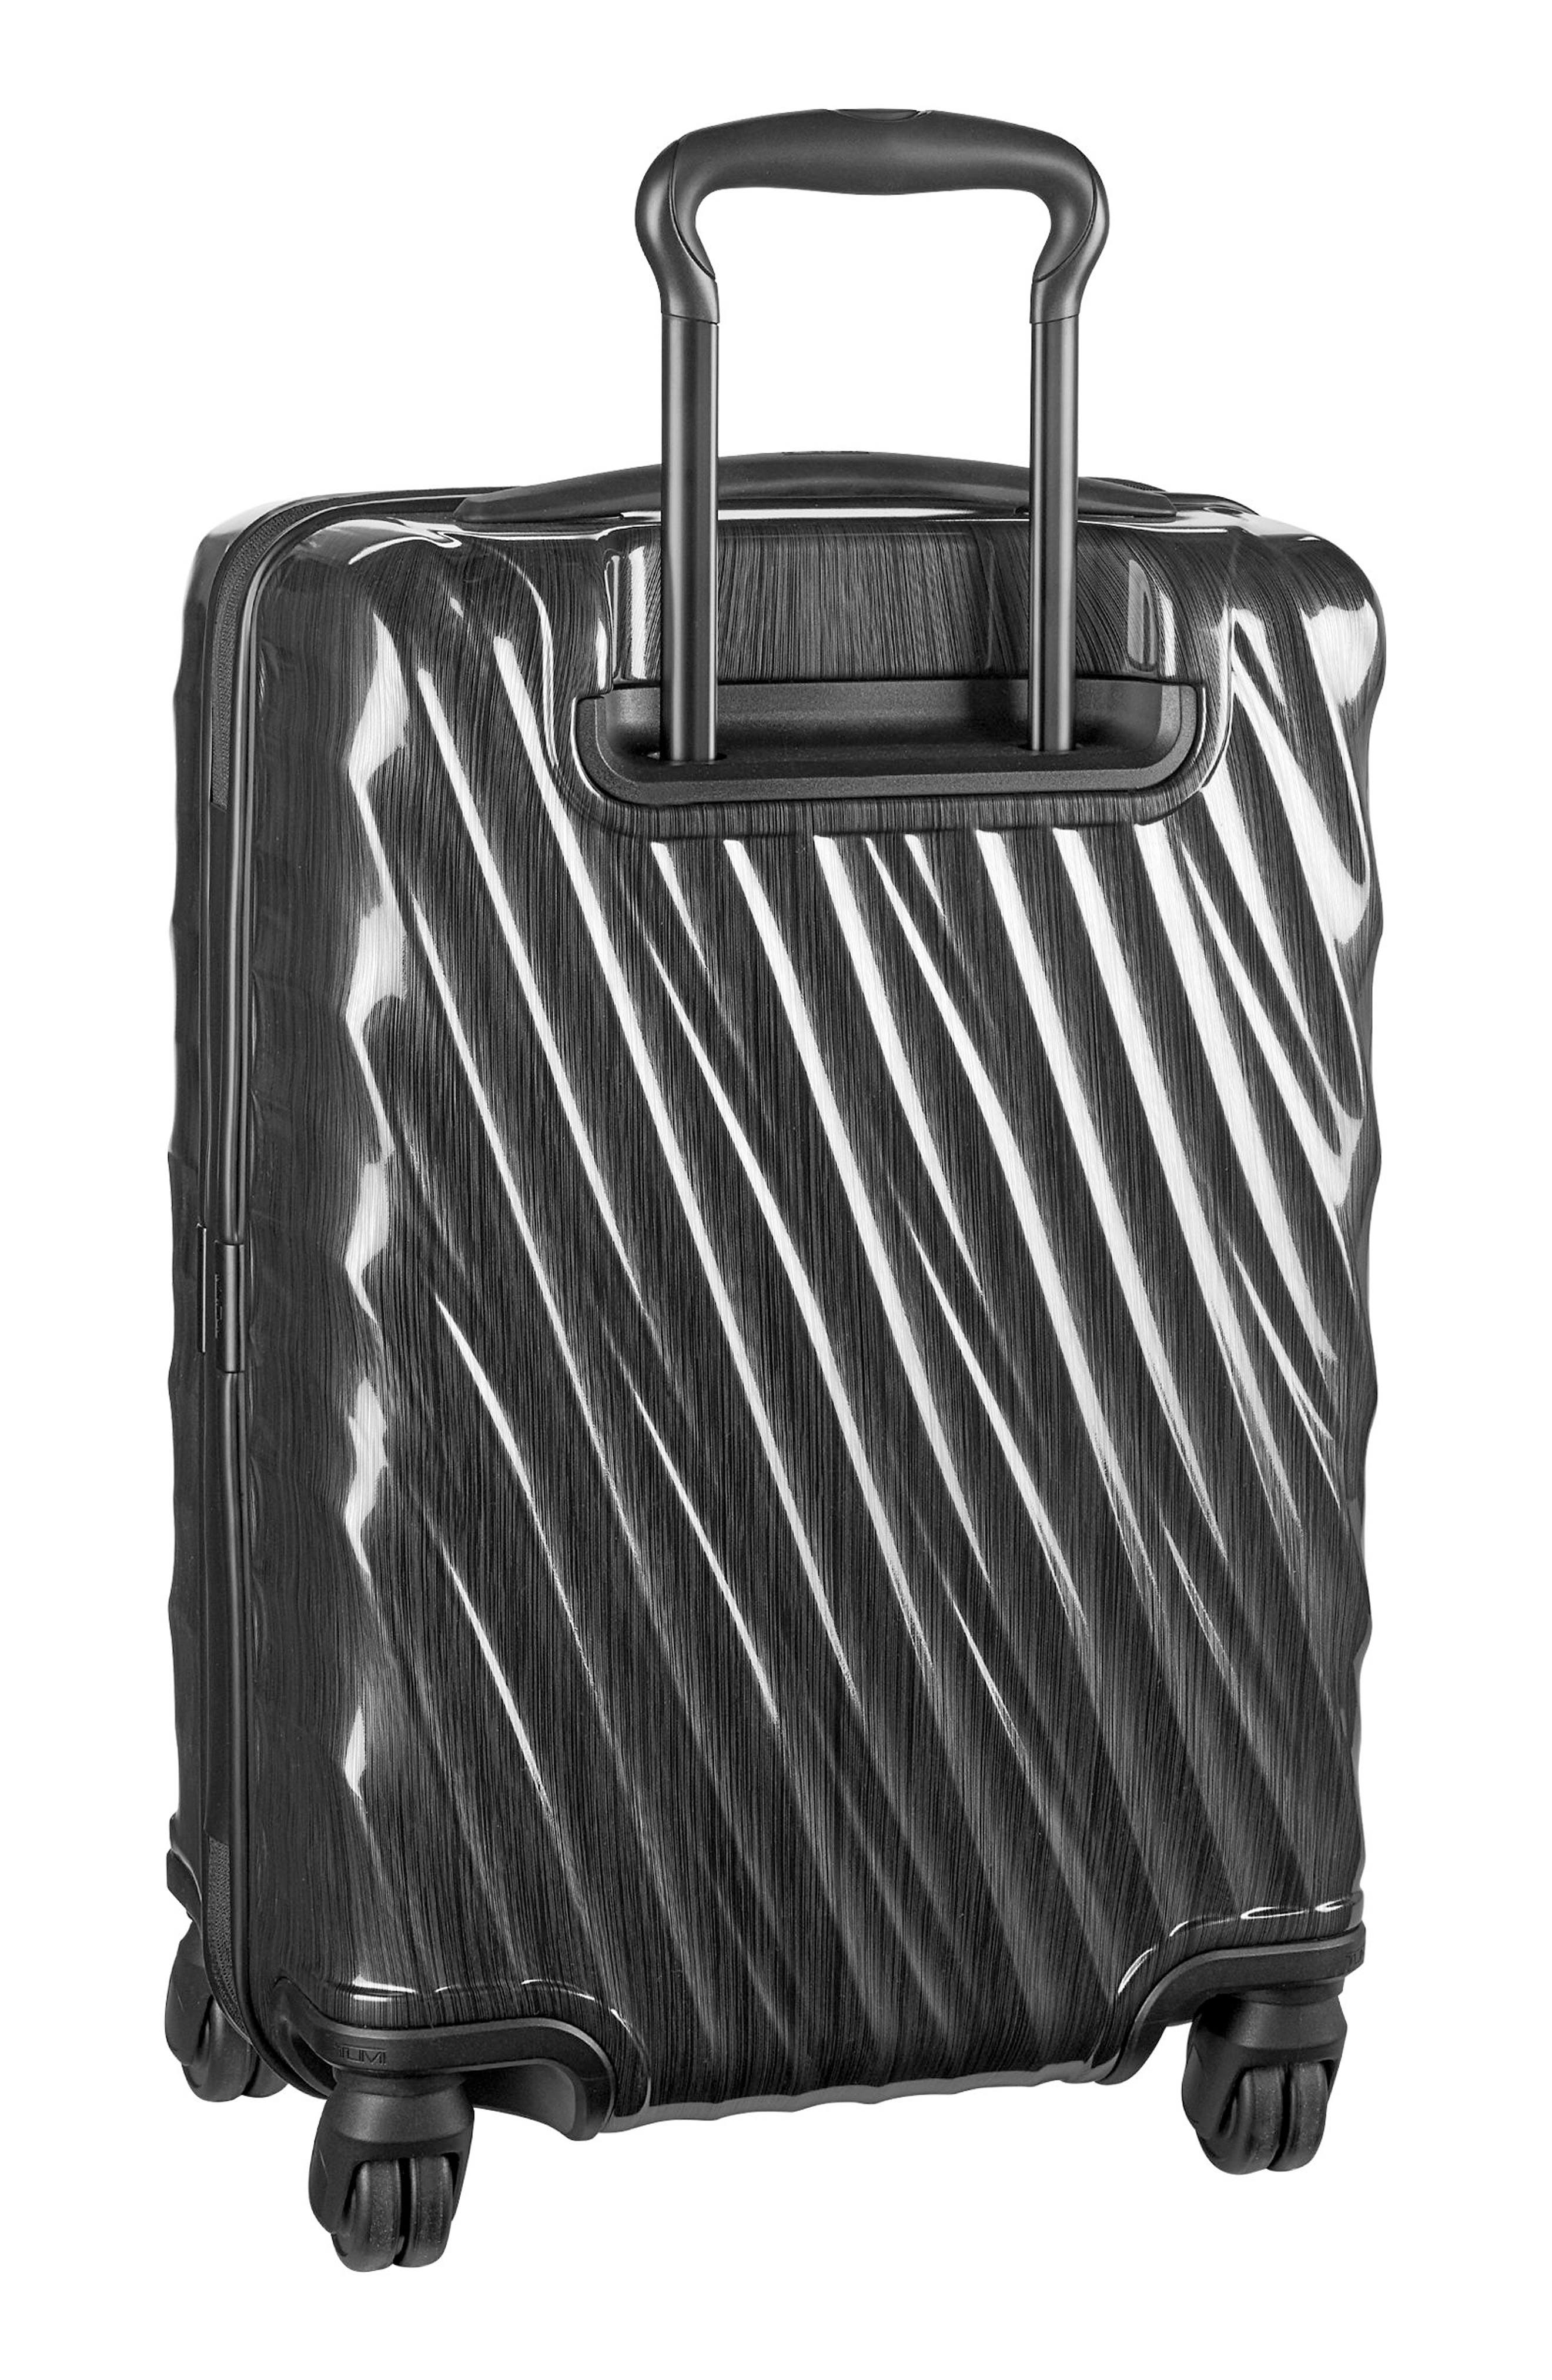 19 Degree 21-Inch International Wheeled Carry-On,                             Alternate thumbnail 4, color,                             001